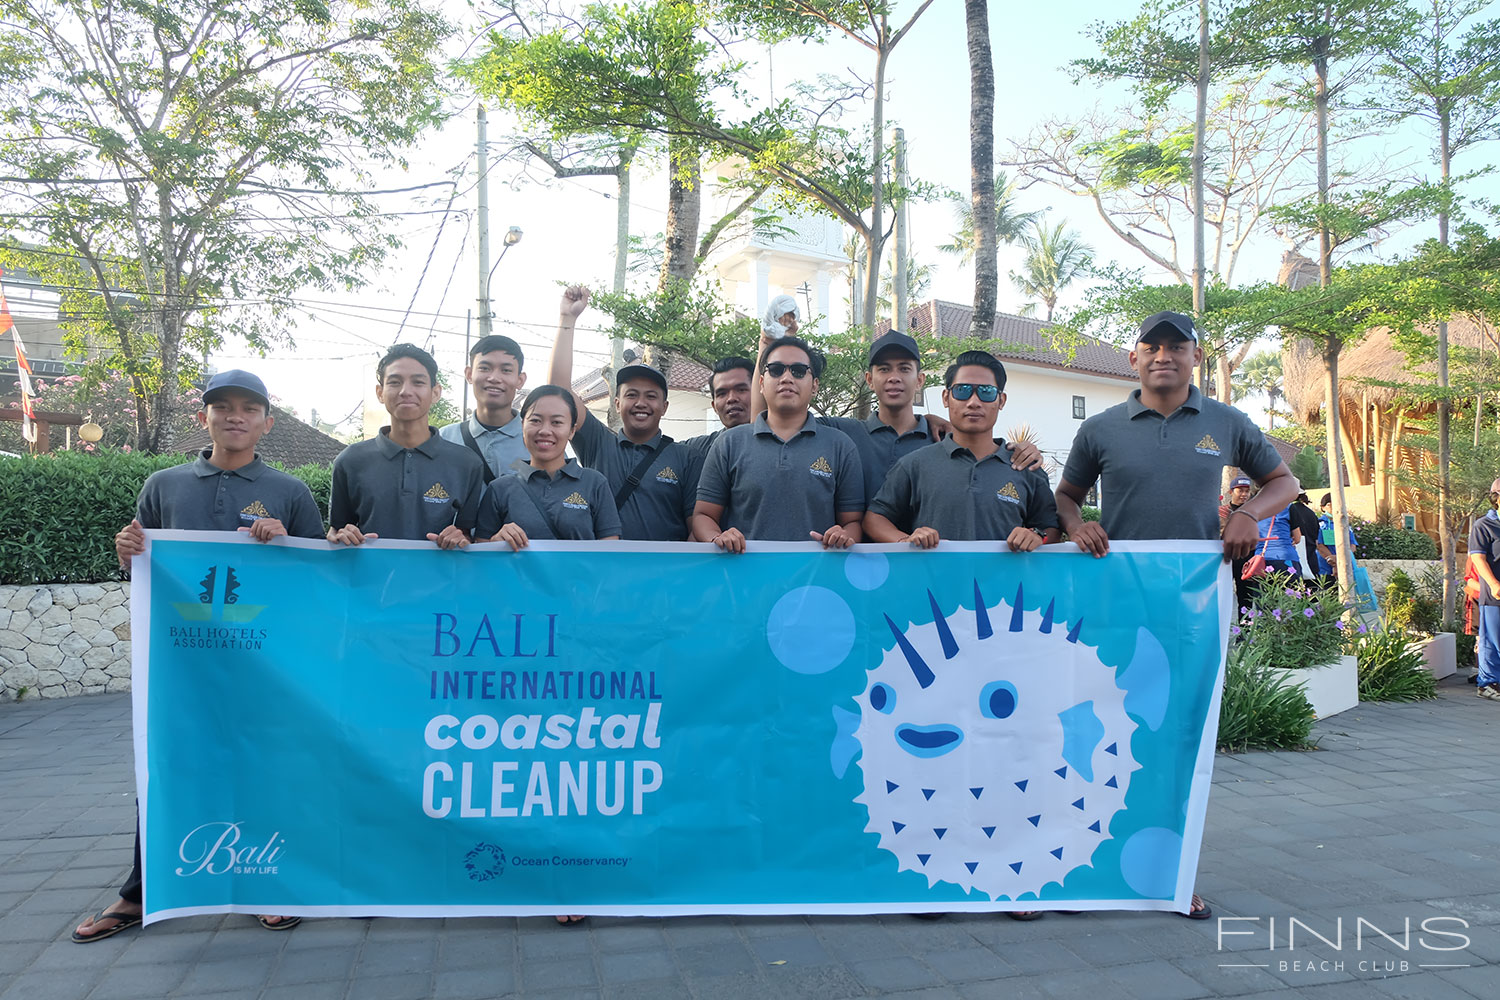 Bali International Coastal Cleanup Finns Beach Club Bali